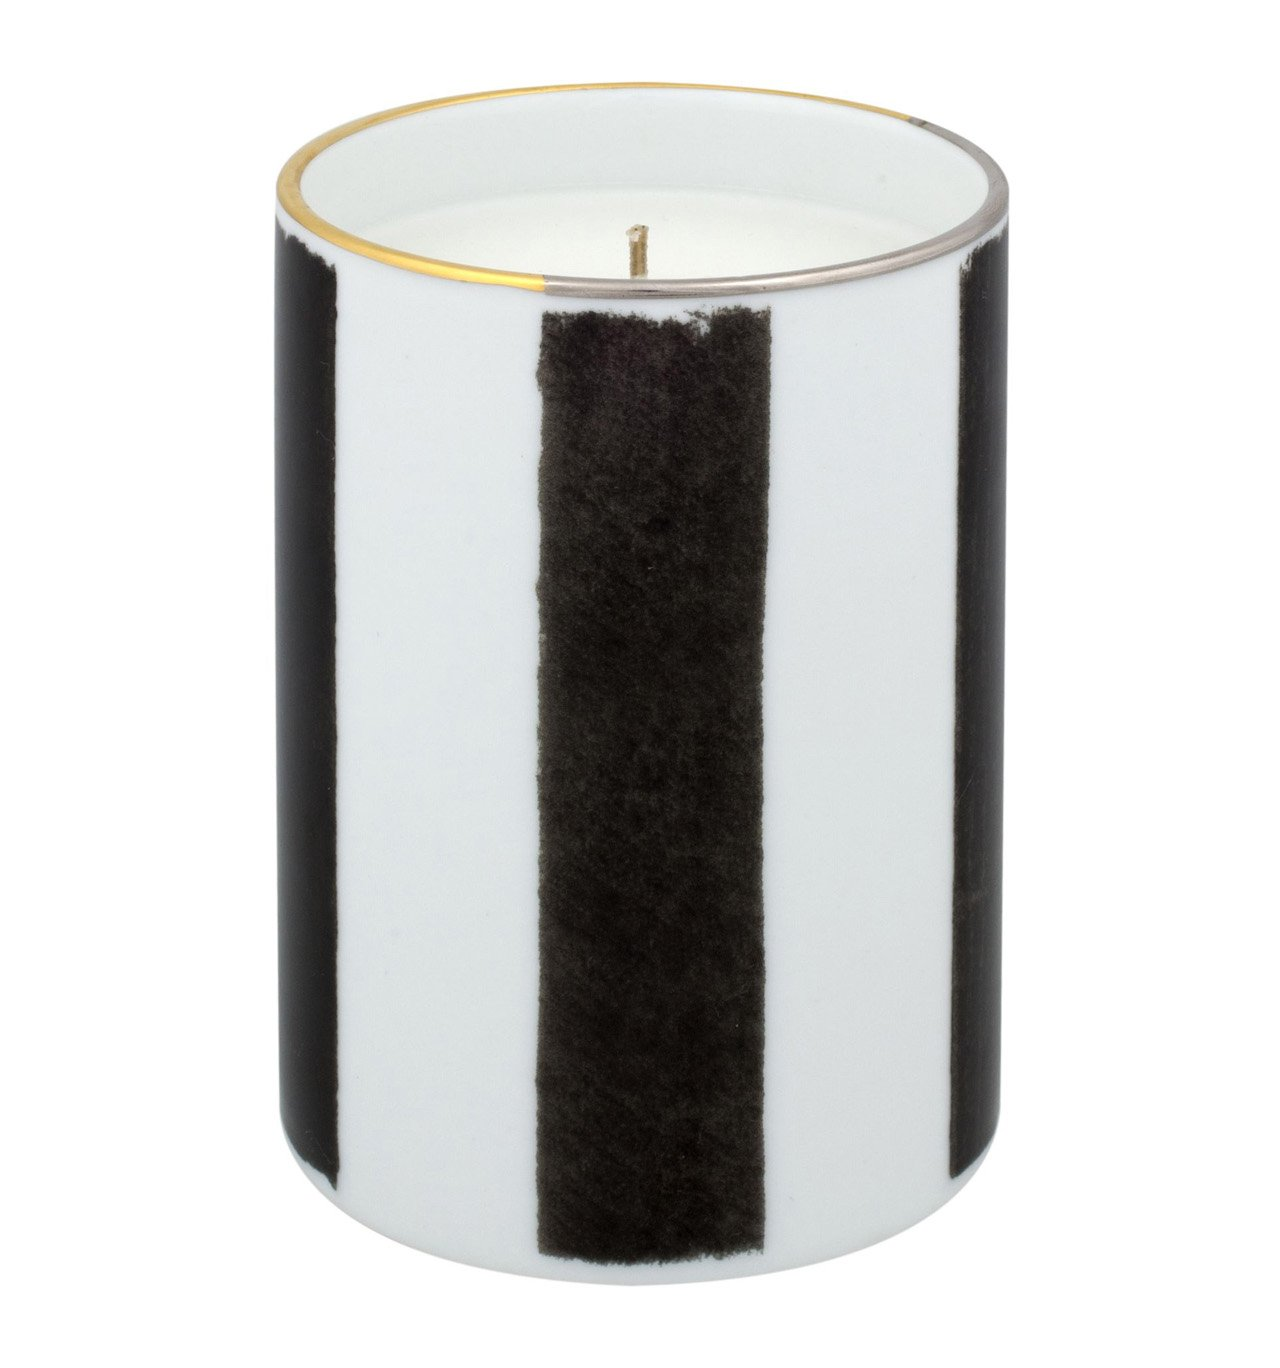 Christian Lacroix - Sol y Sombra Candle by Christian Lacroix